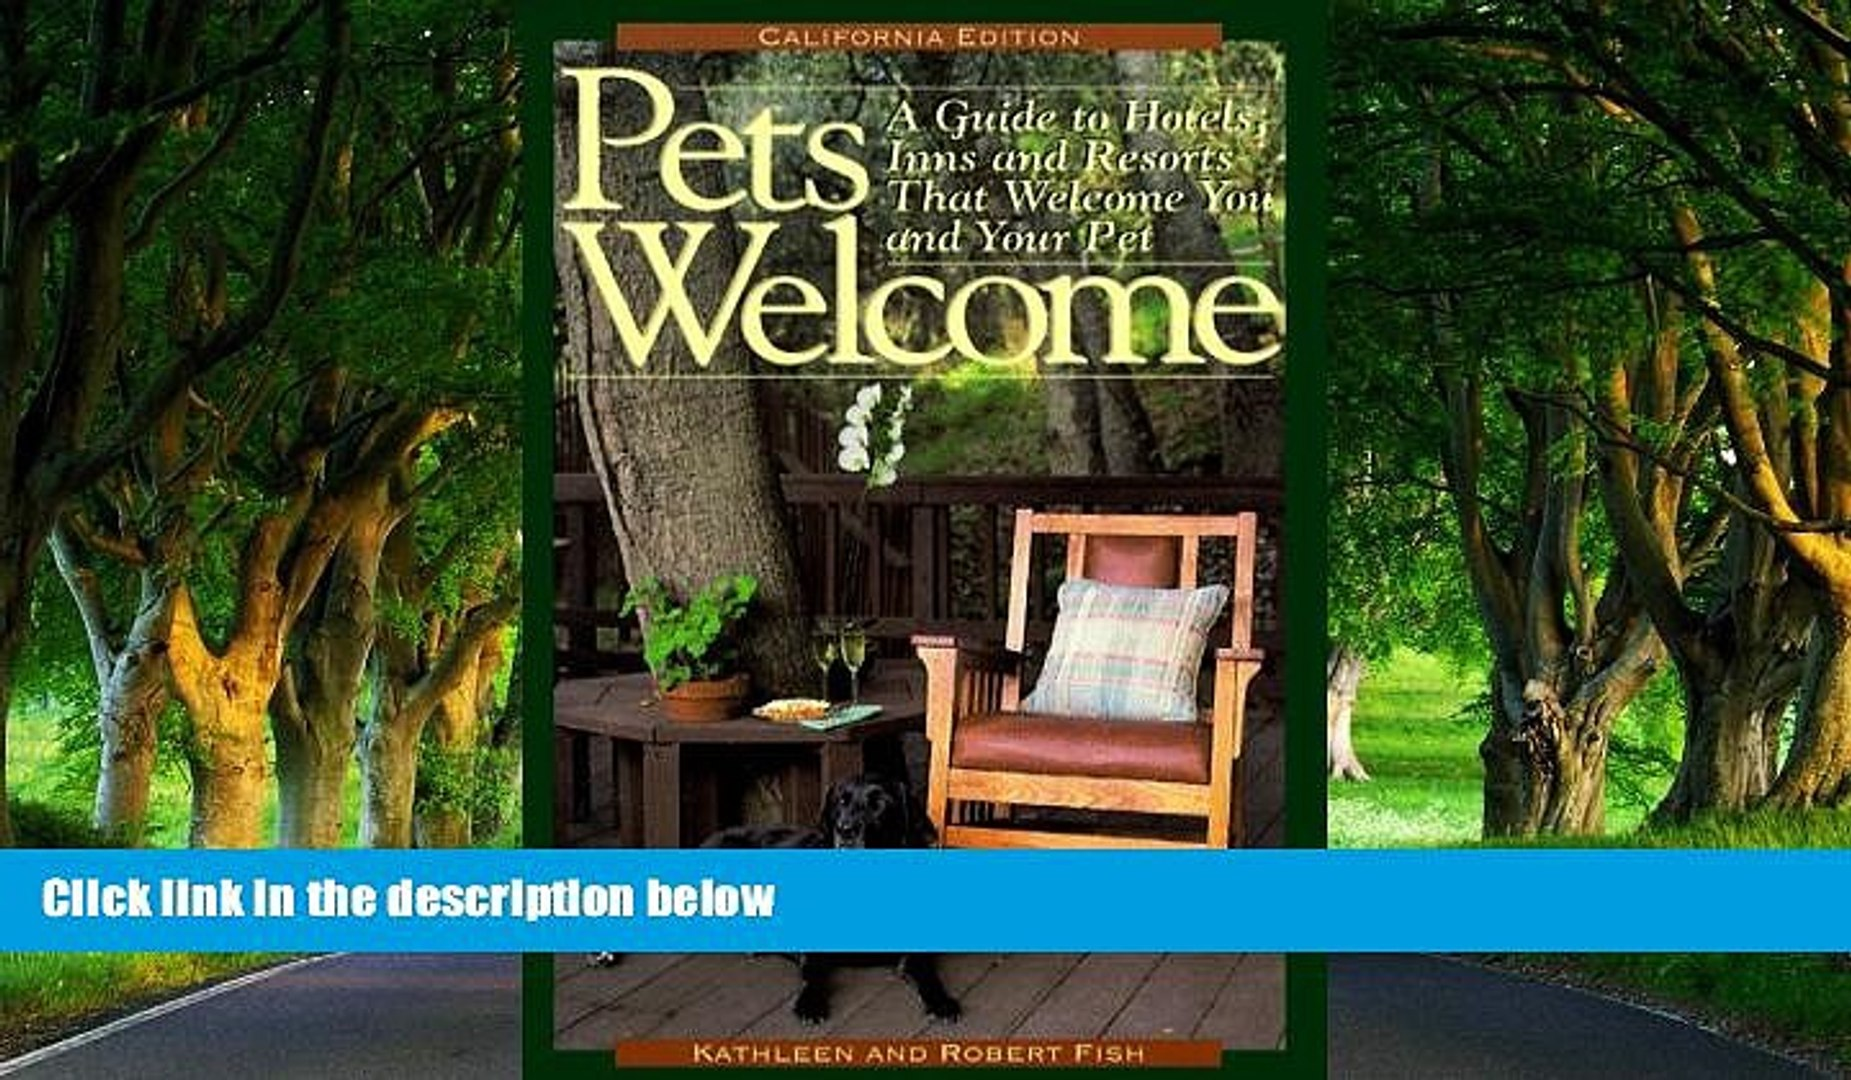 Big Deals  Pets Welcome : A Guide to Hotels, Inns and Resorts That Welcome You and Your Pet: